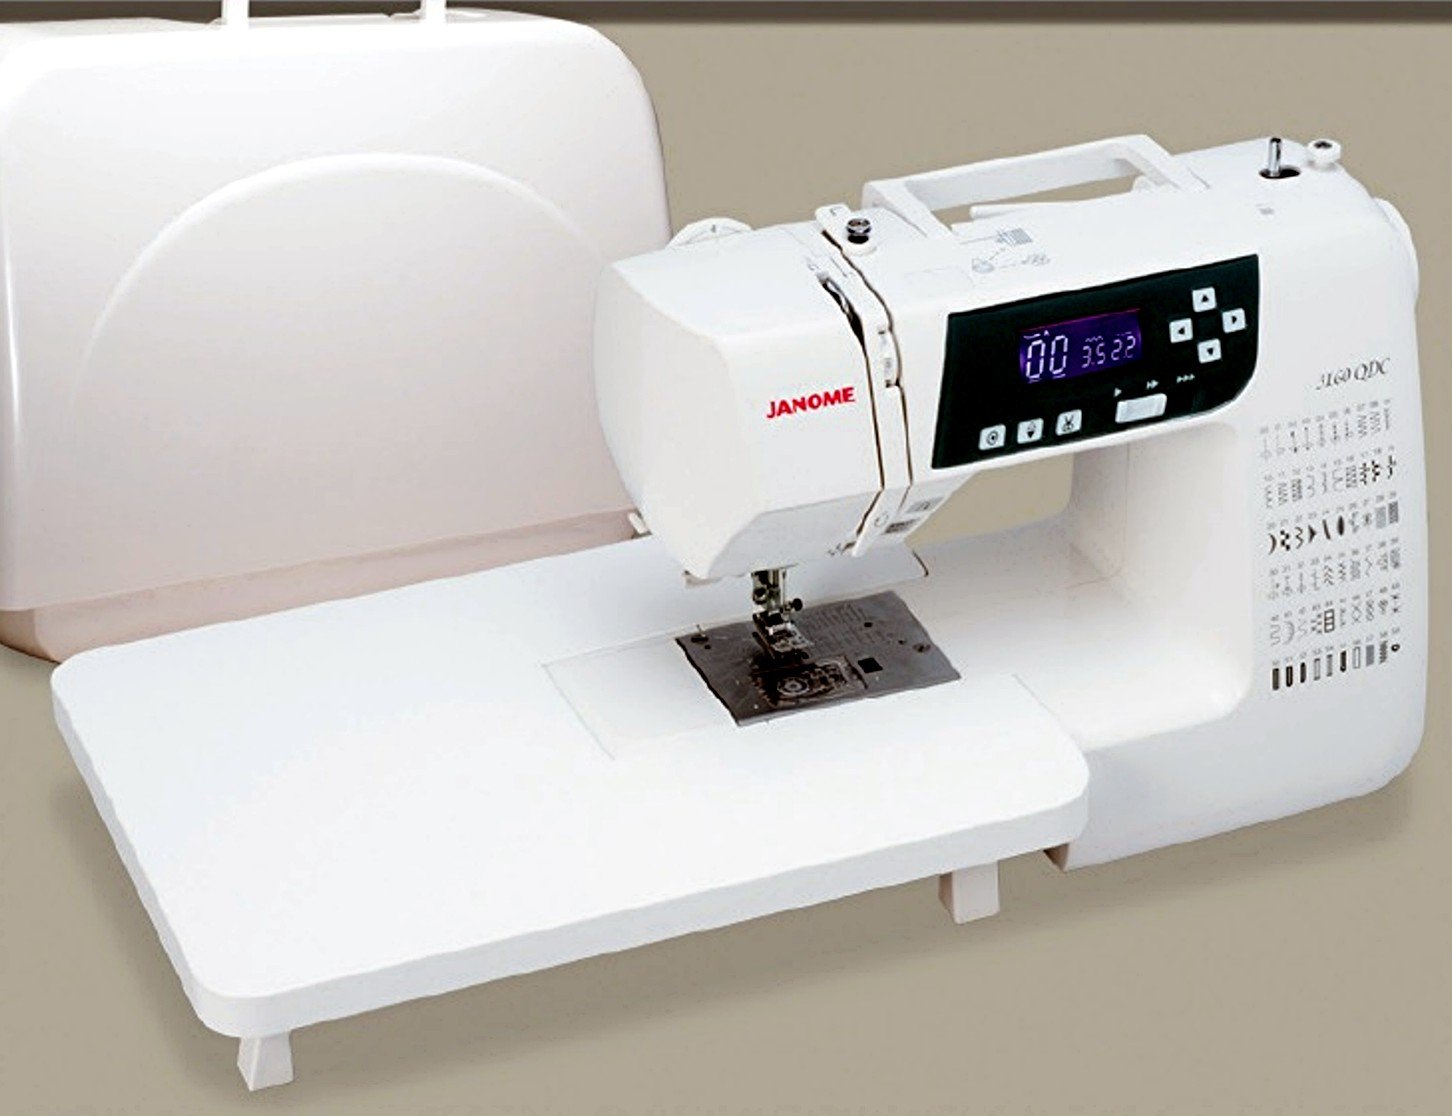 janome 3160qdc sewing machine reviews